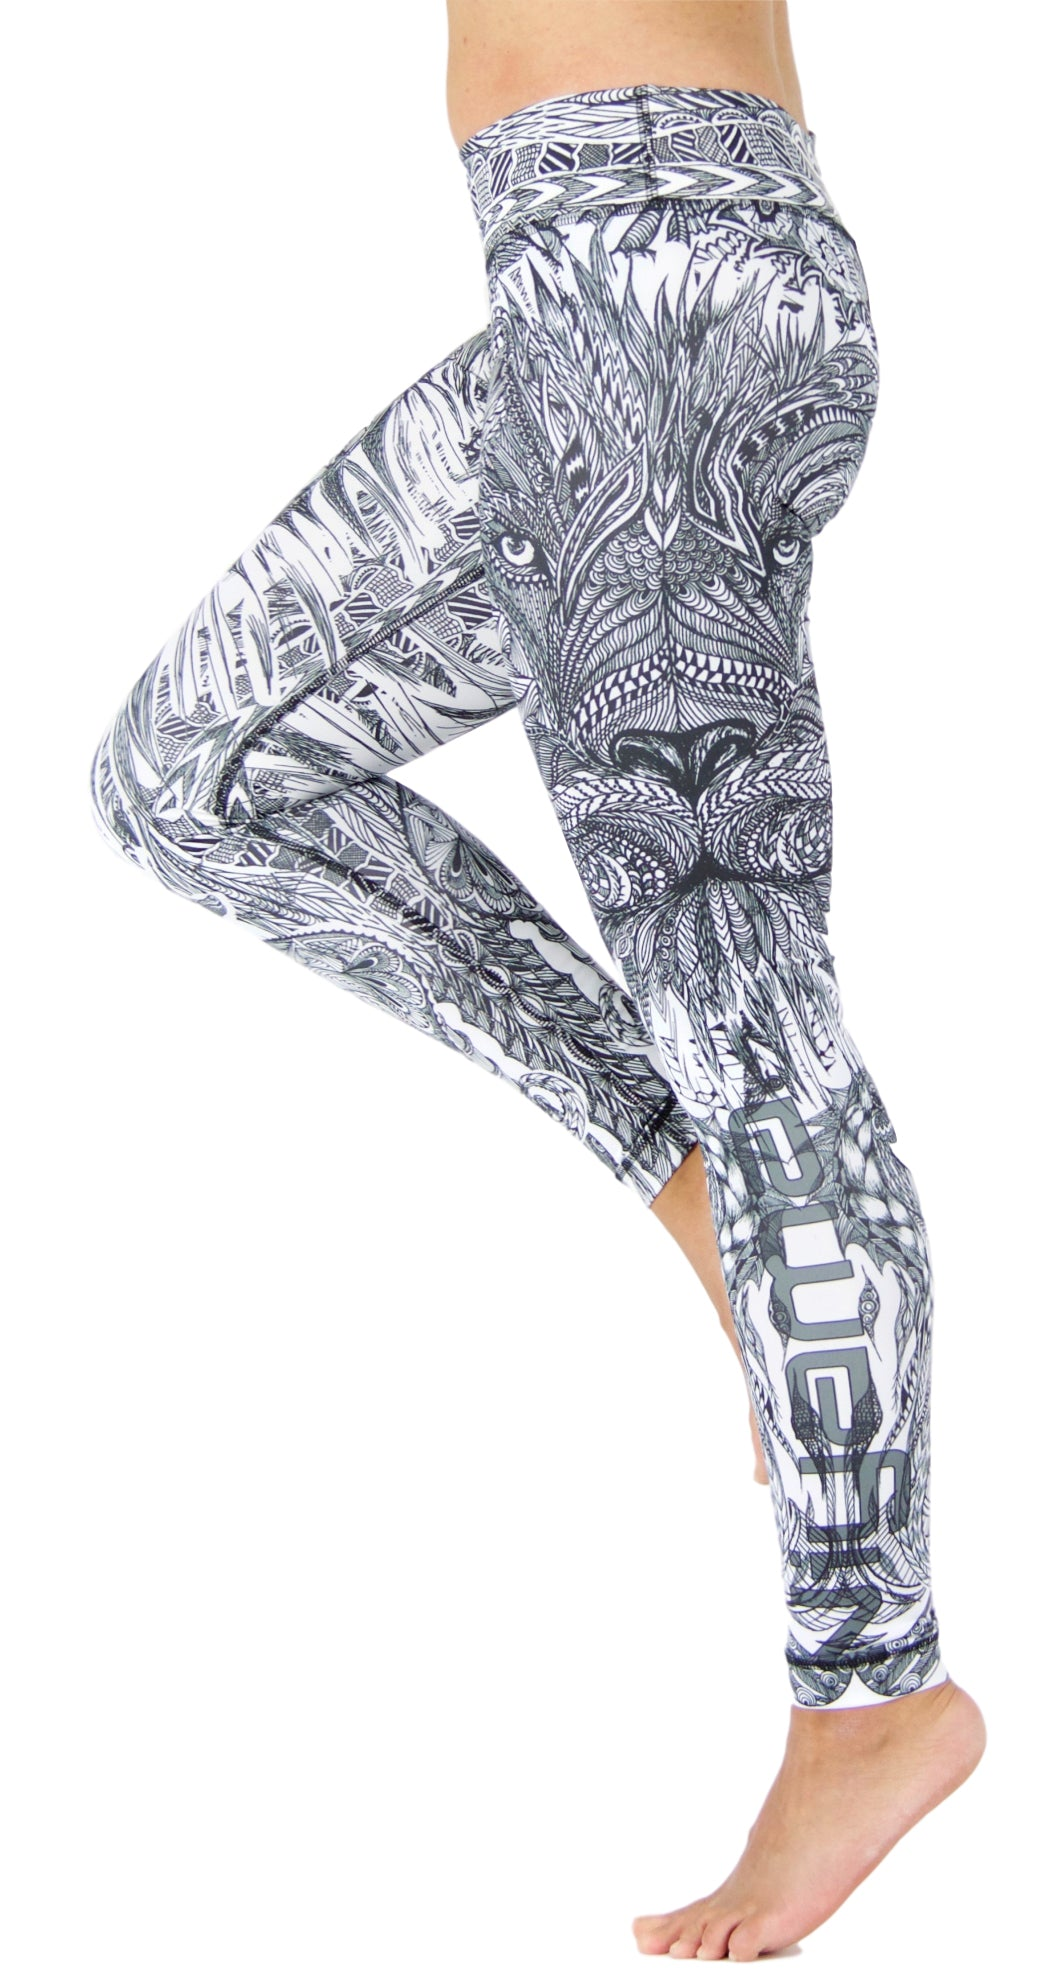 Sundance Warrior by Niyama - High Quality, Yoga Legging for Movement Artists.